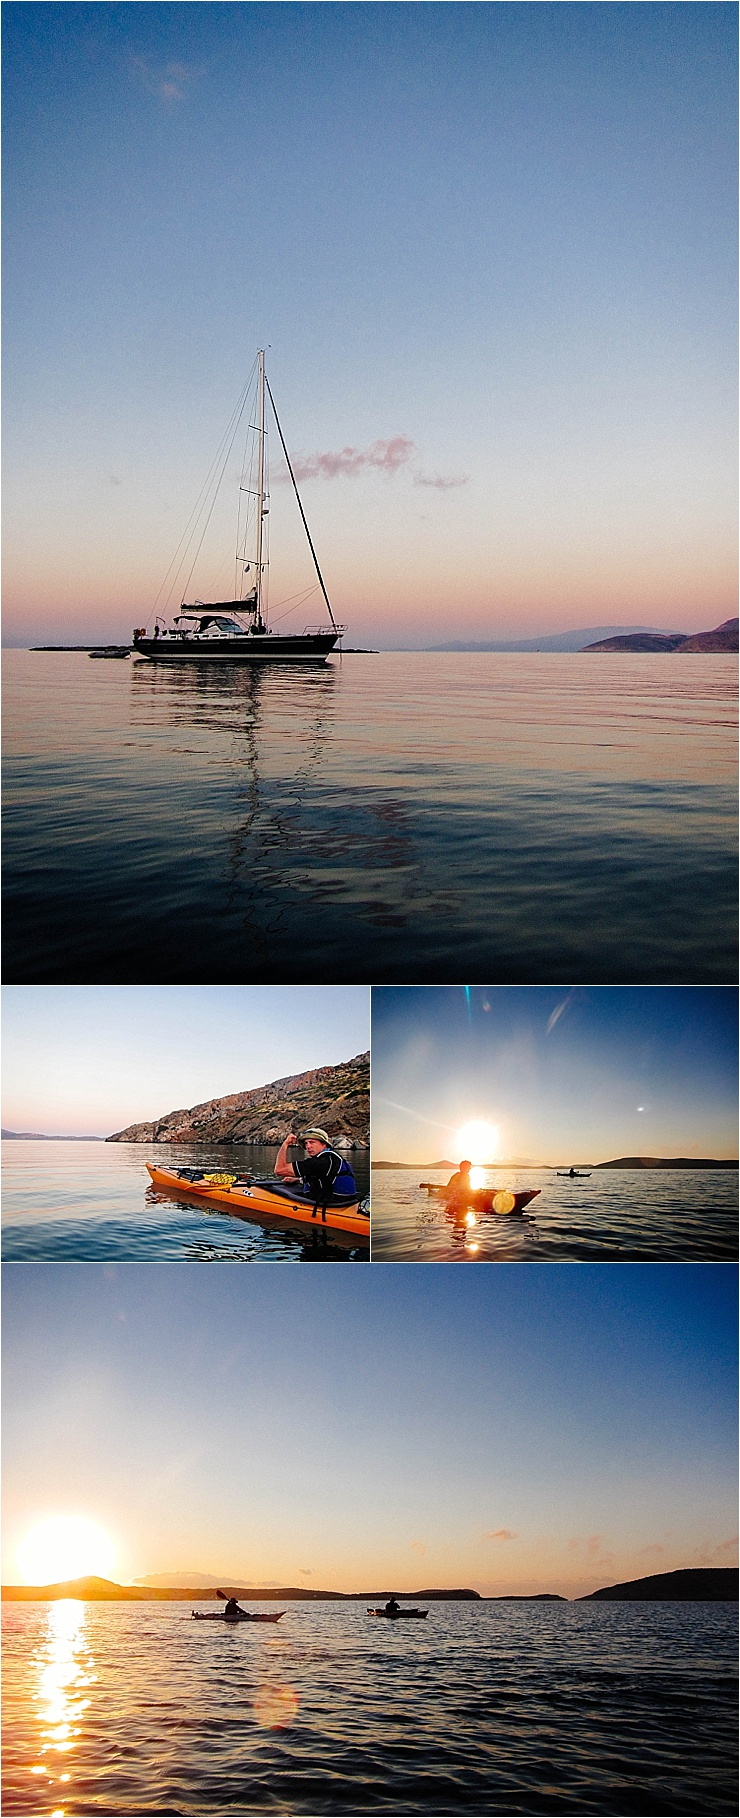 Sea kayaking at sunset in Greece by Mister Pretty's Pictures